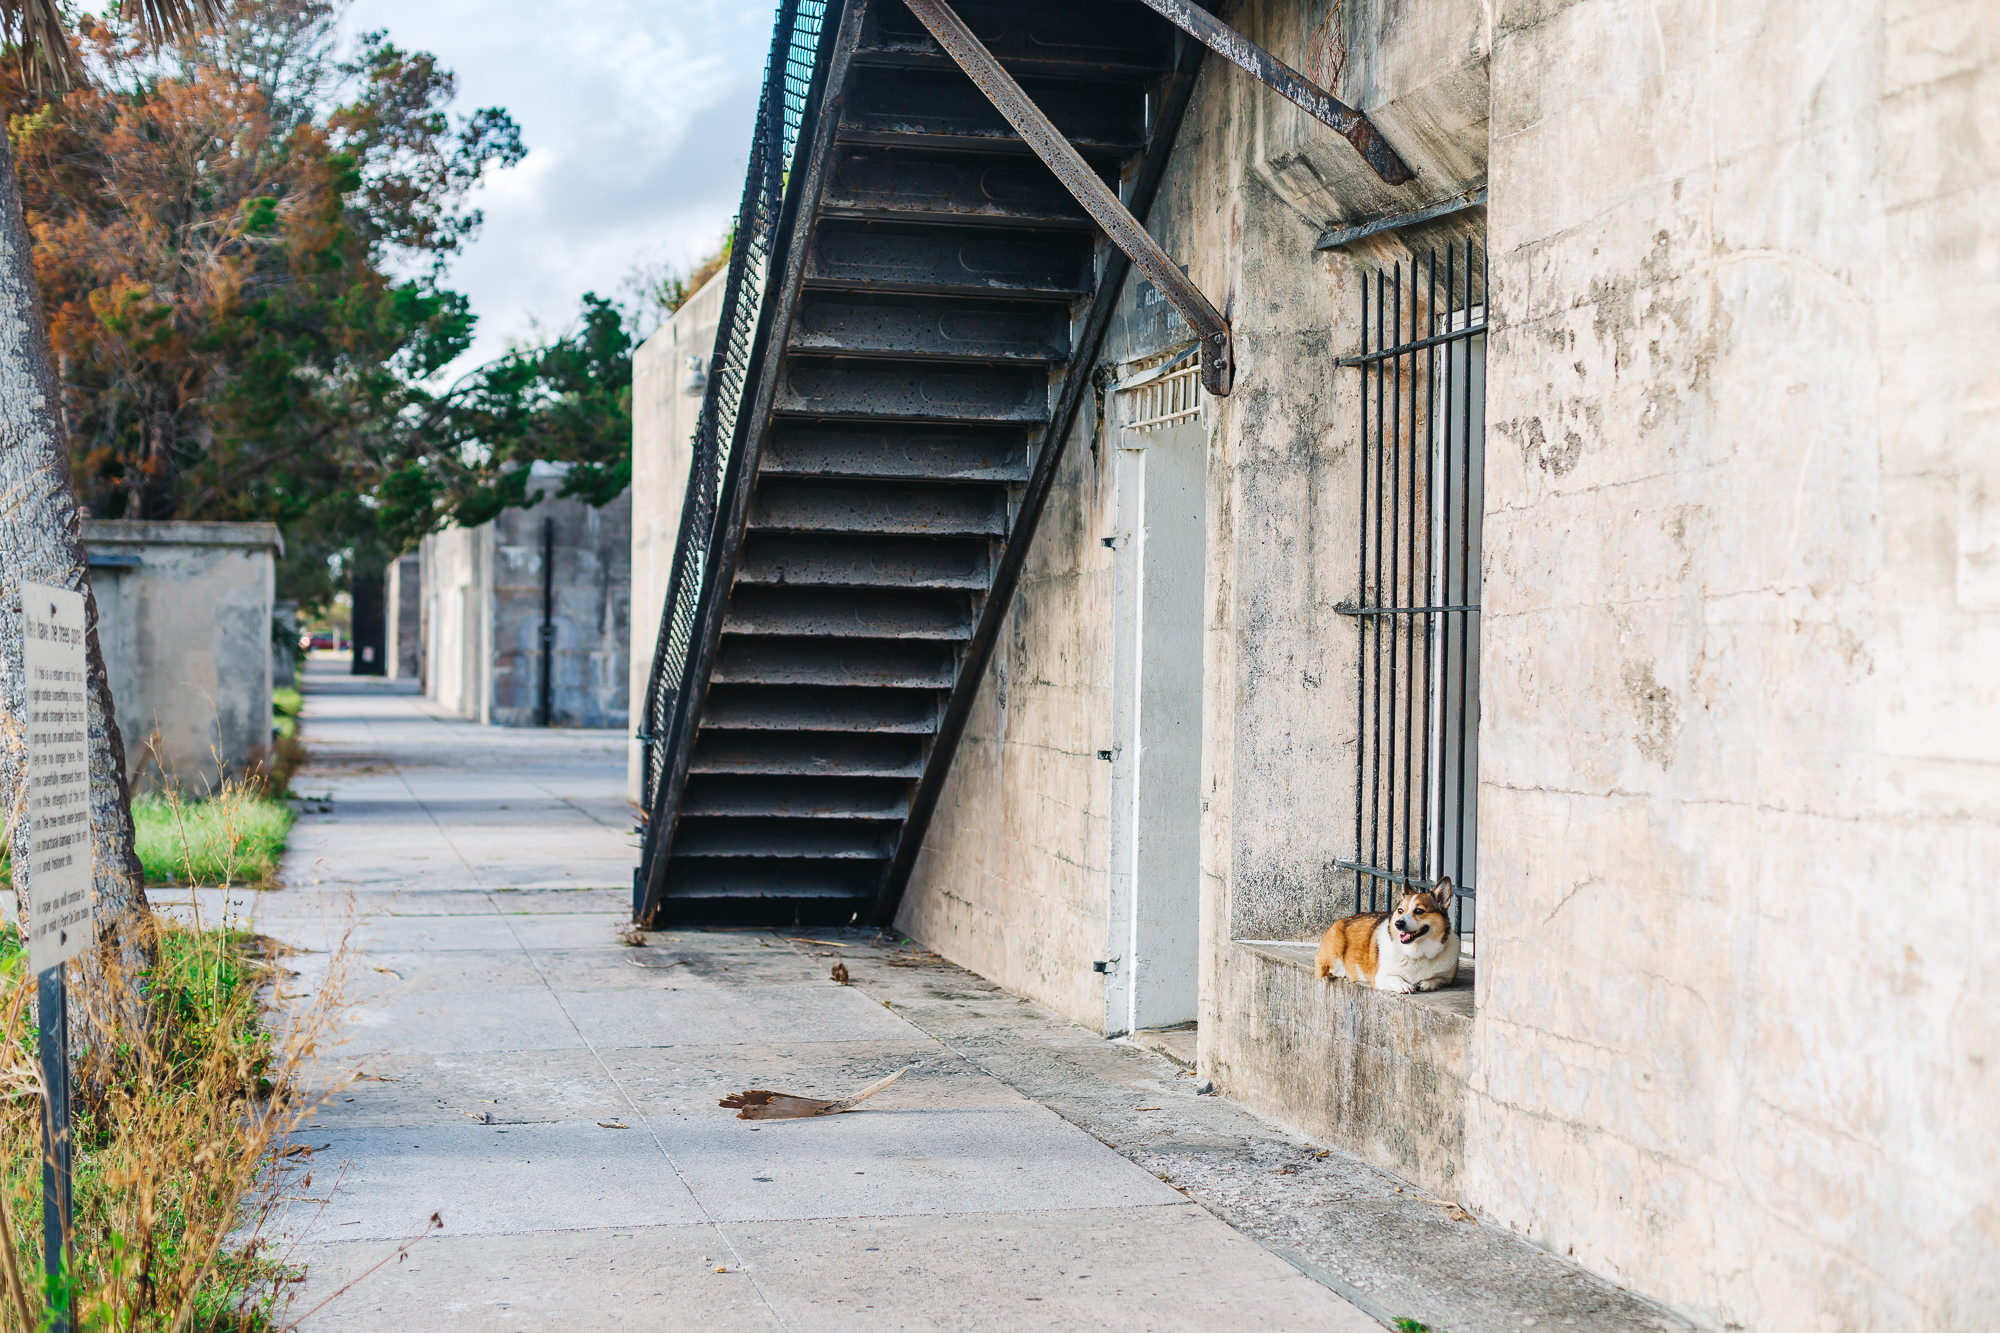 Kuma had a great time exploring Battery Laidley at Fort De Soto Park